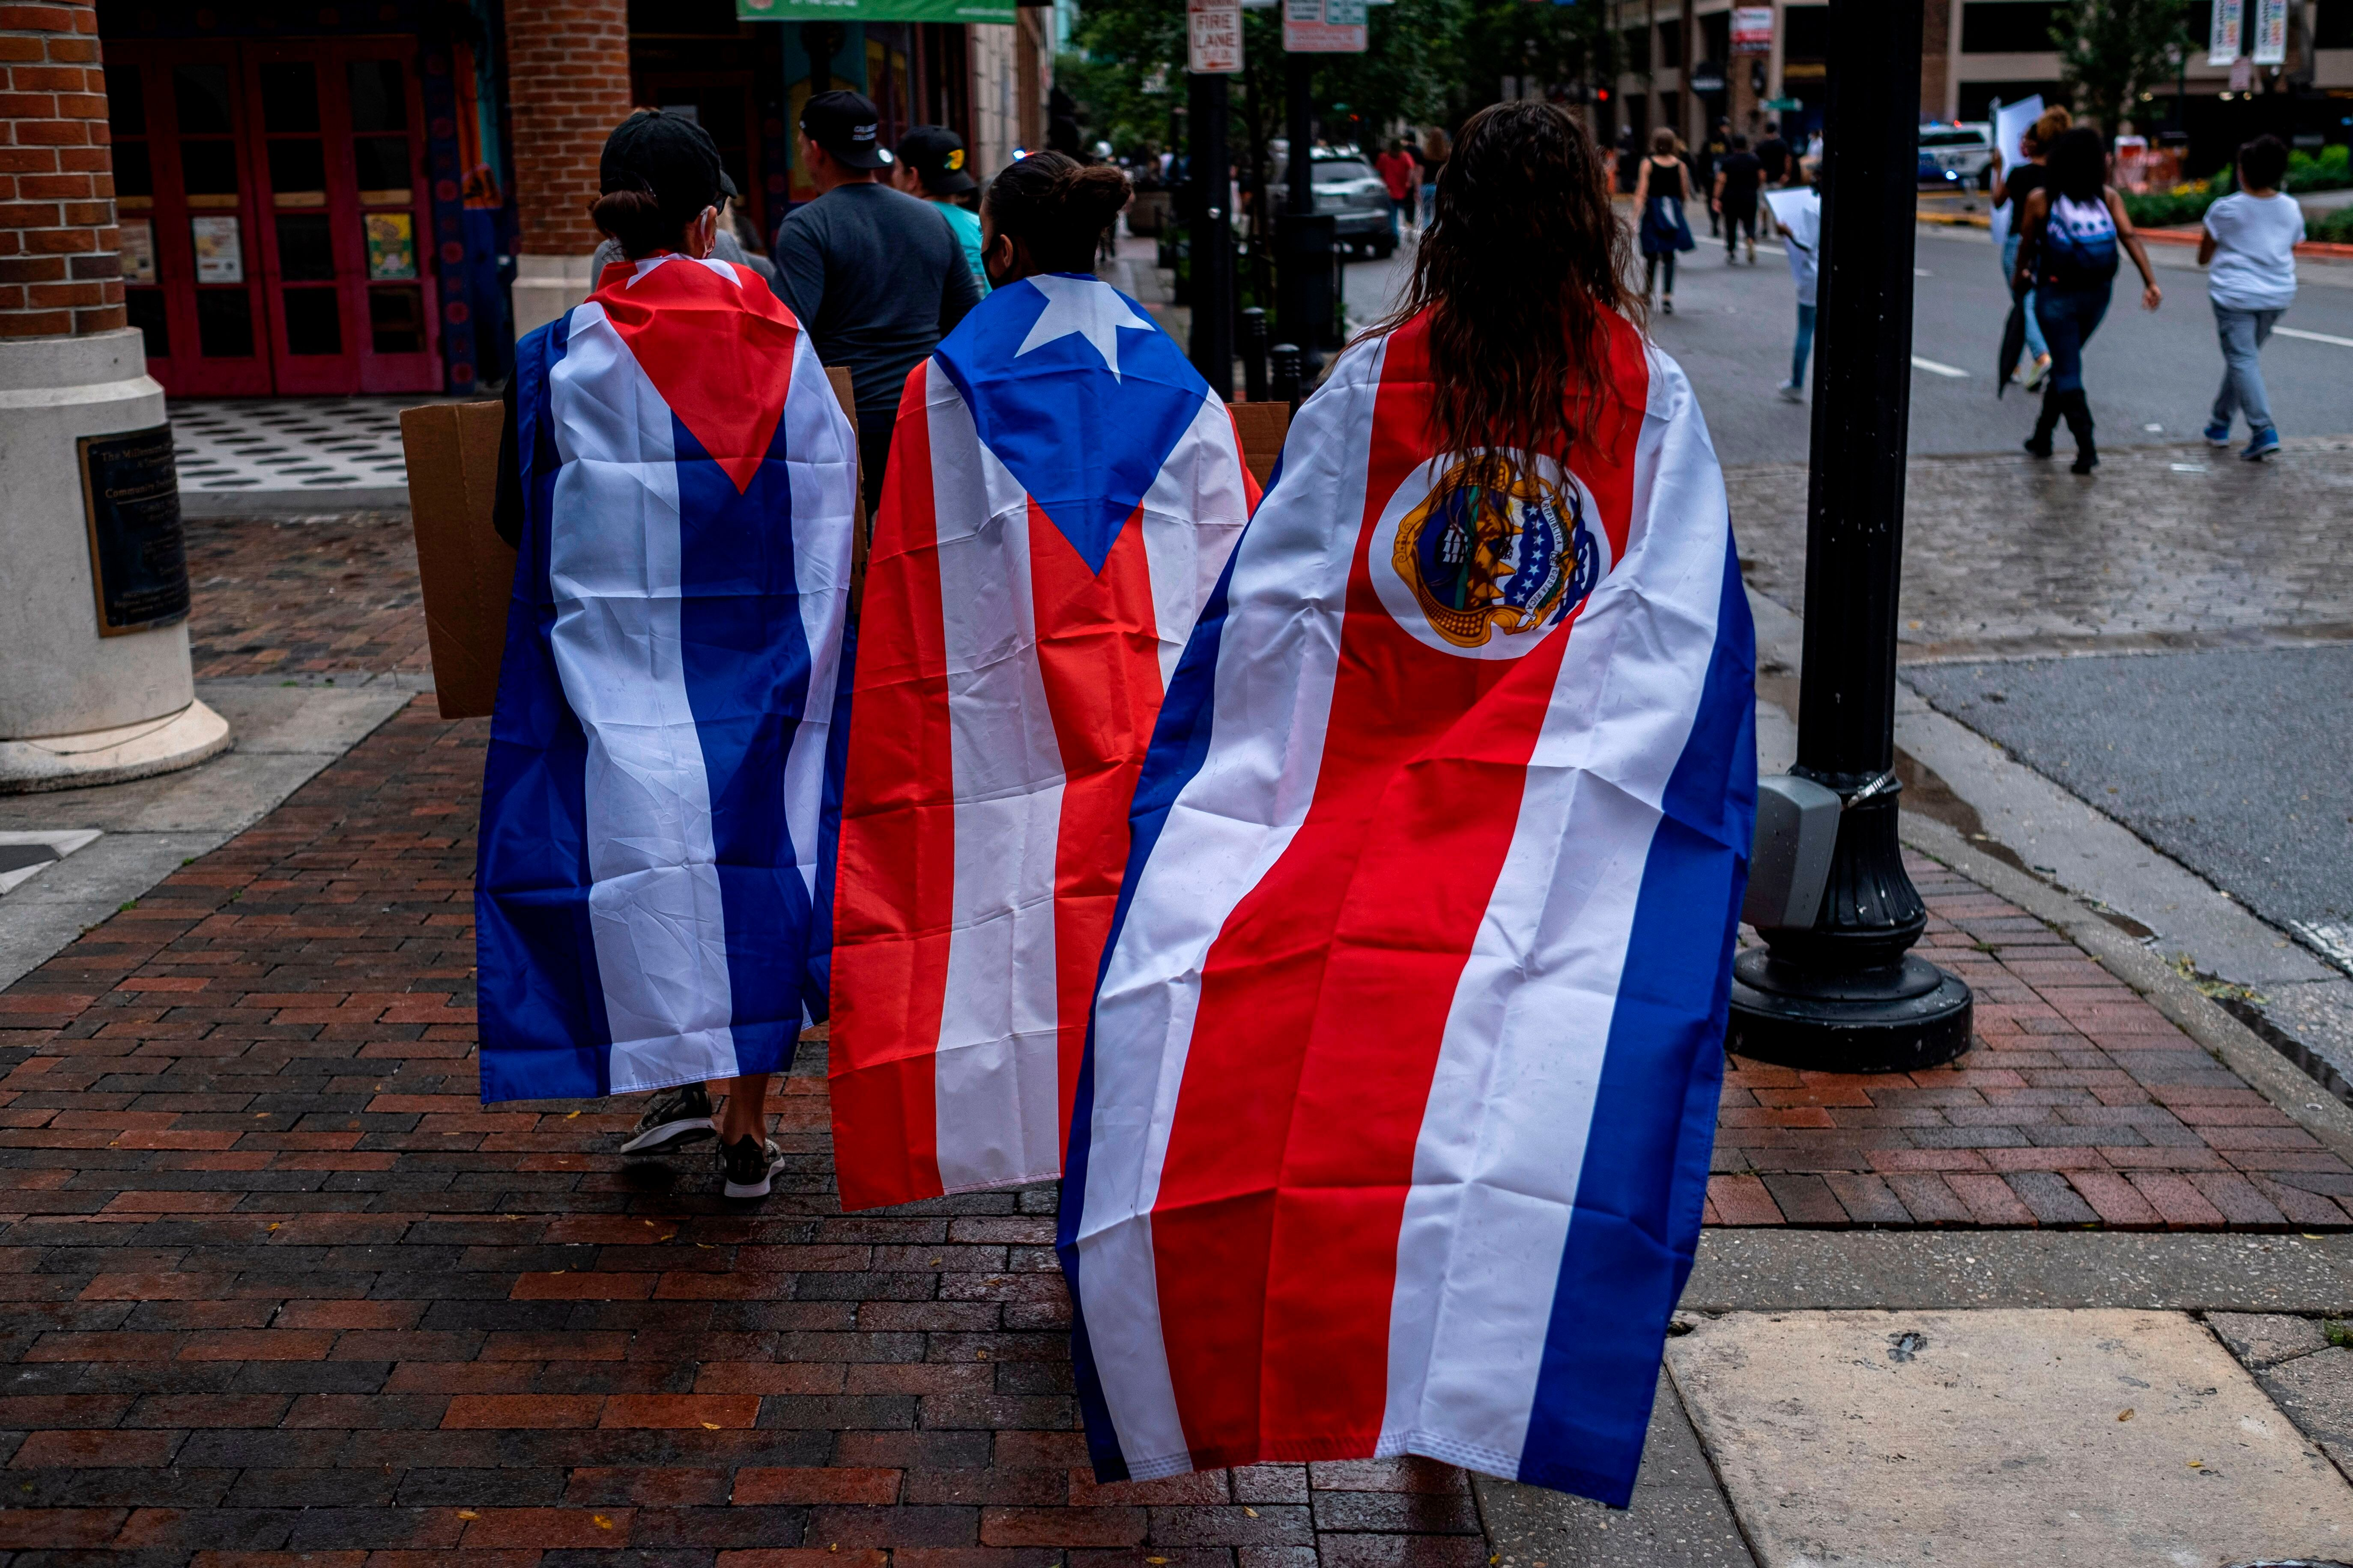 """Protesters wear Cuban, Puerto Rican and Costa Rican flags during an anti-racist protest in Orlando, Florida, after the killing of George Floyd this spring. While Trump has accused Joe Biden of favoring radical """"socialism"""" and fomenting unrest, the Biden campaign has begun to compare Trump's response to the protests to the authoritarian tendencies of the Latin American leaders the U.S. president claims to oppose."""